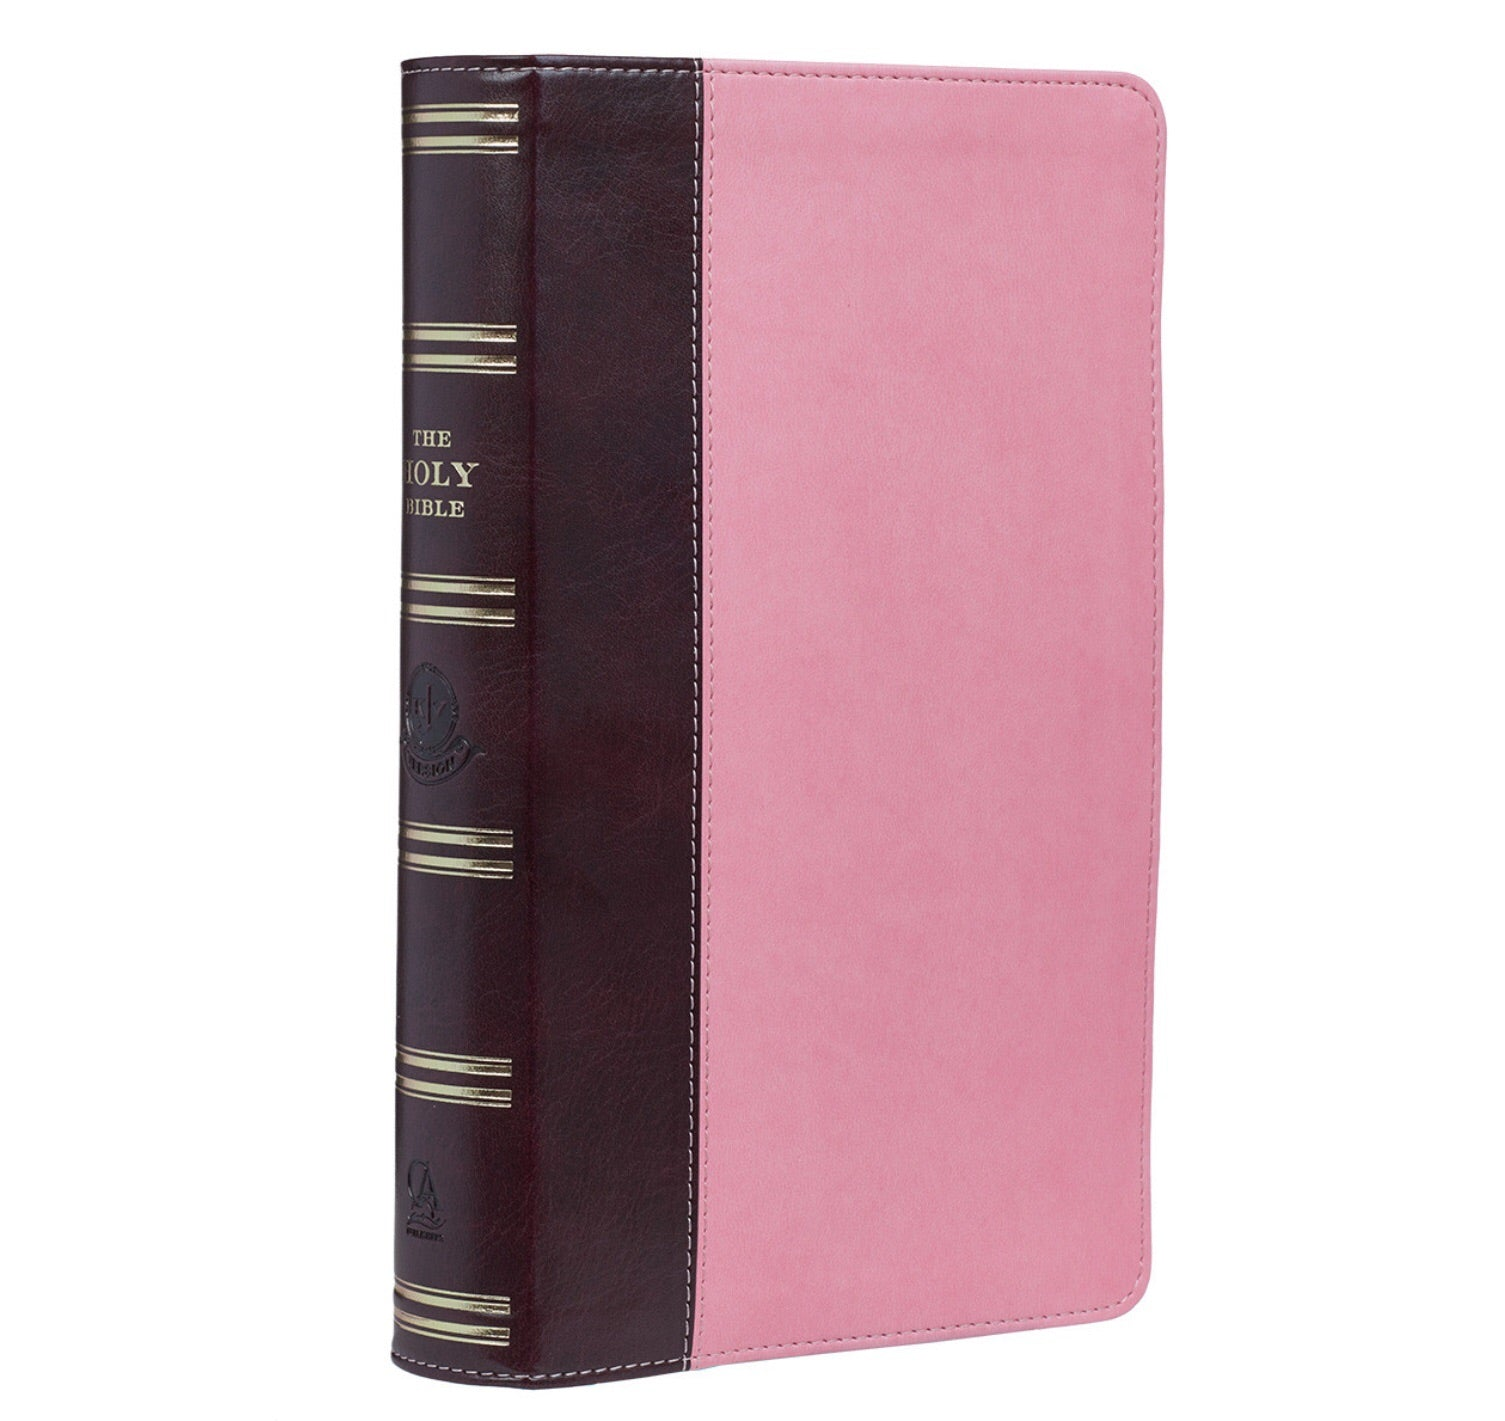 The Holy Bible KJV Thinline Large Print Bible